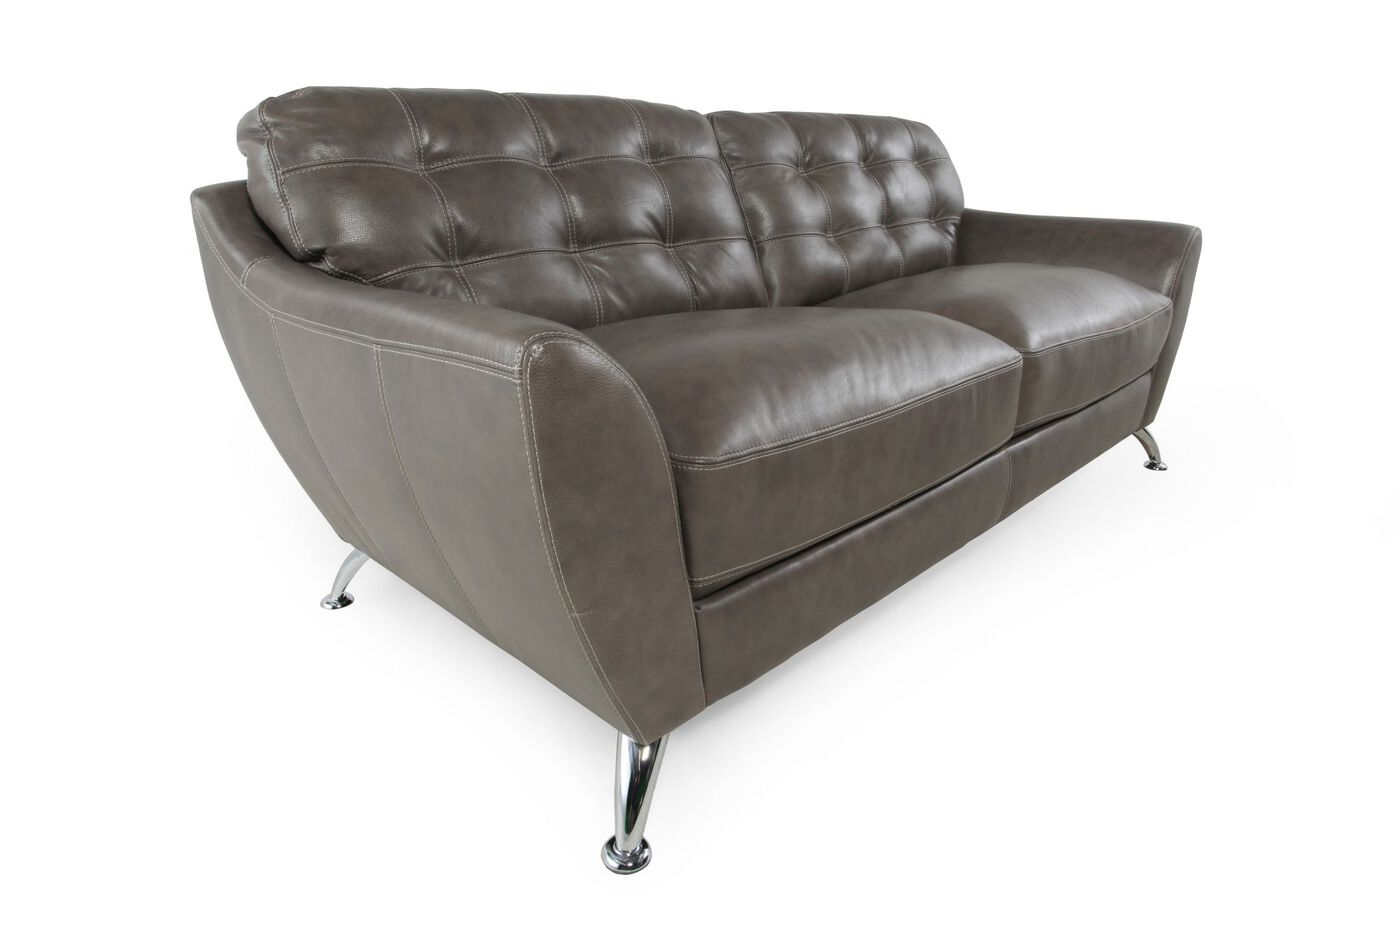 Tufted leather 84 sofa in steel gray mathis brothers for 84 inch sofa